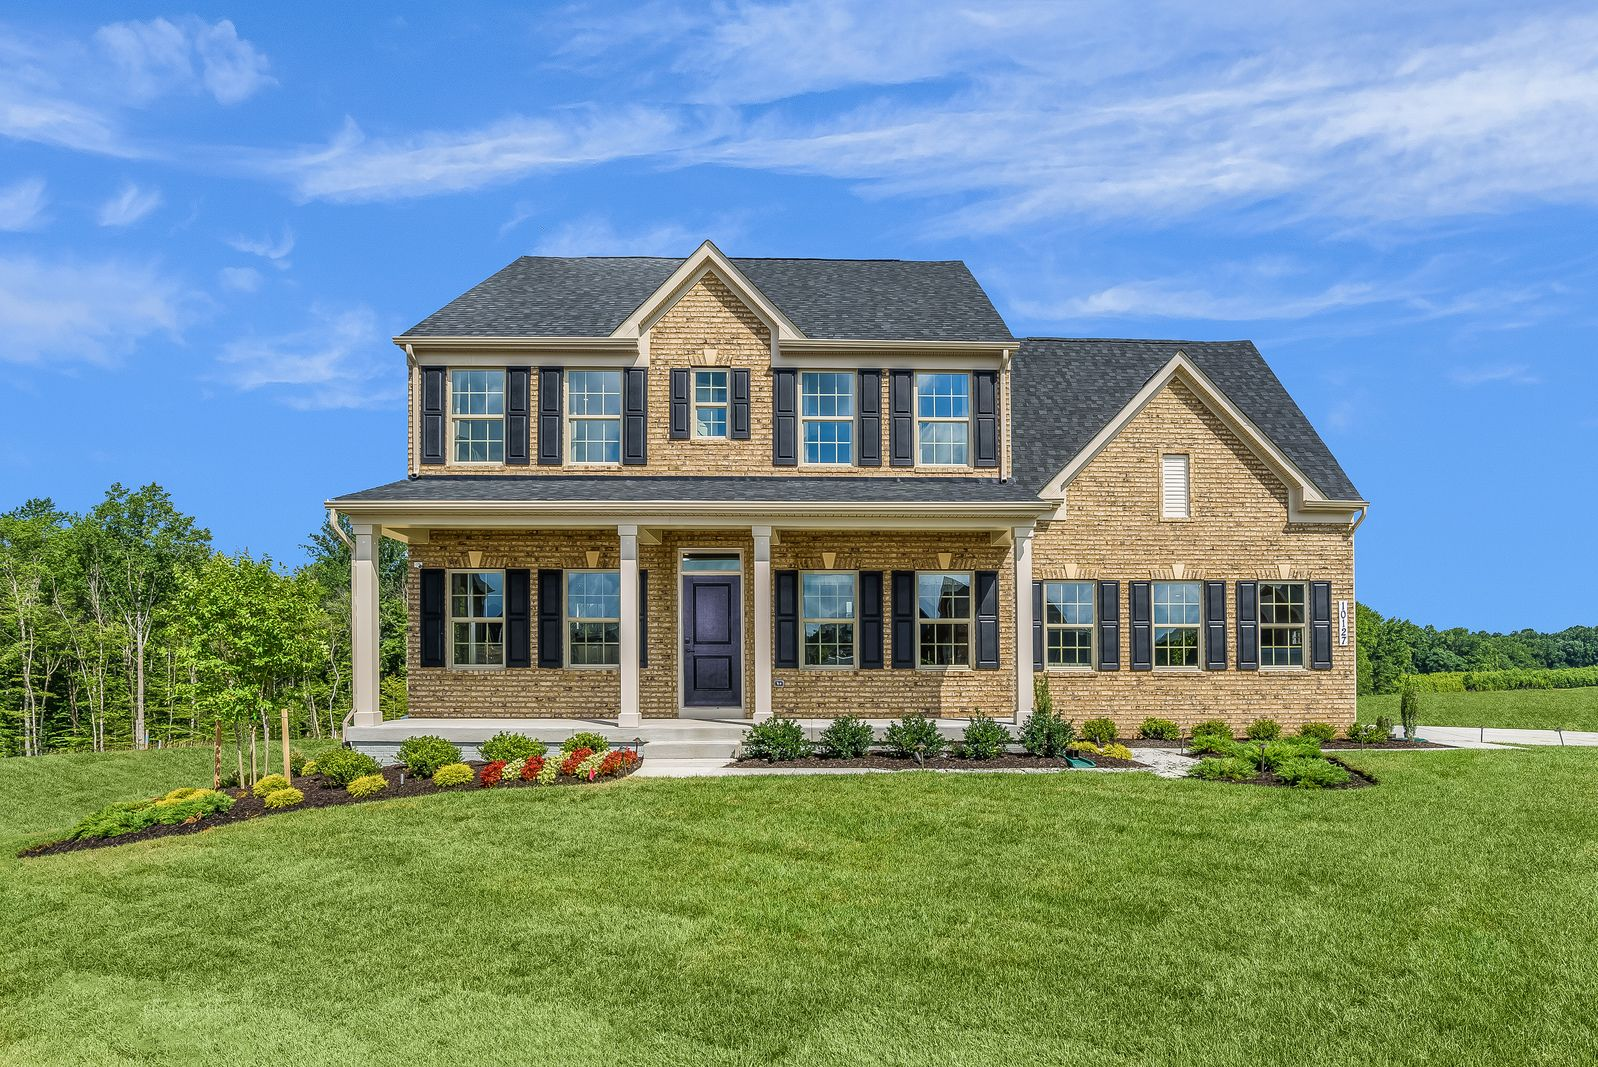 WELCOME TO CANTER CREEK IN UPPER MARLBORO, MD